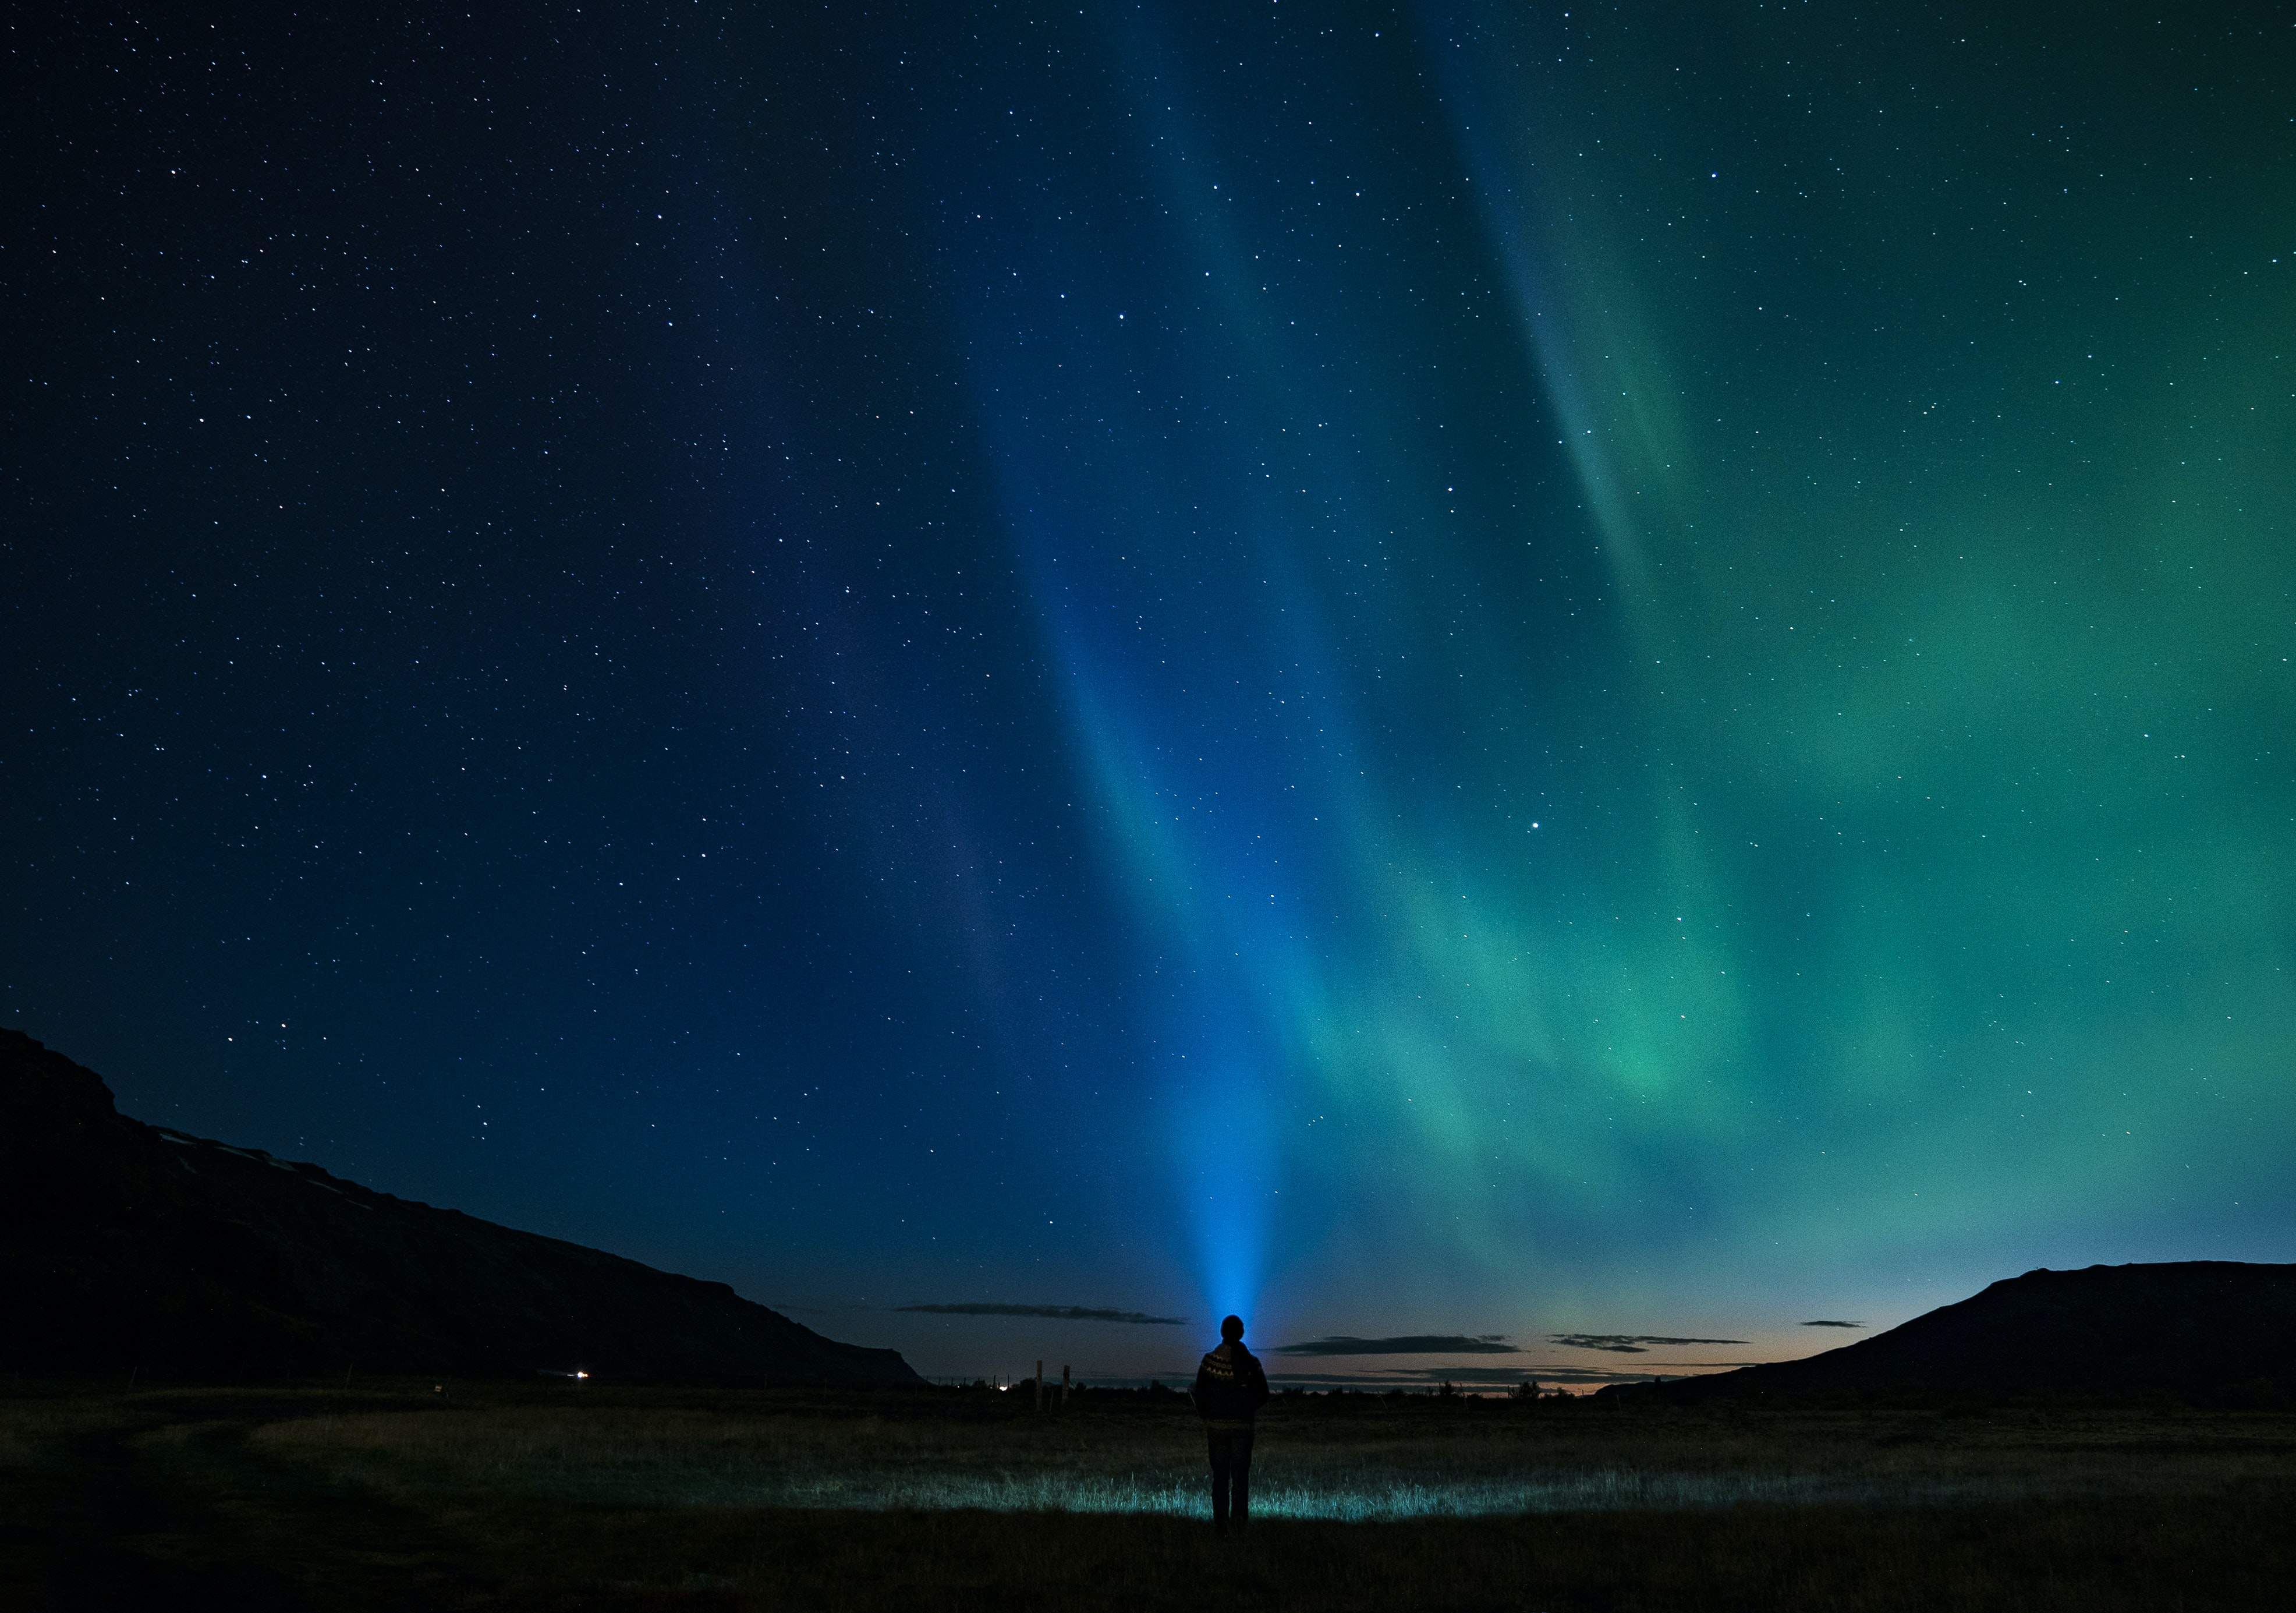 silhouette of person standing under aurora night sky